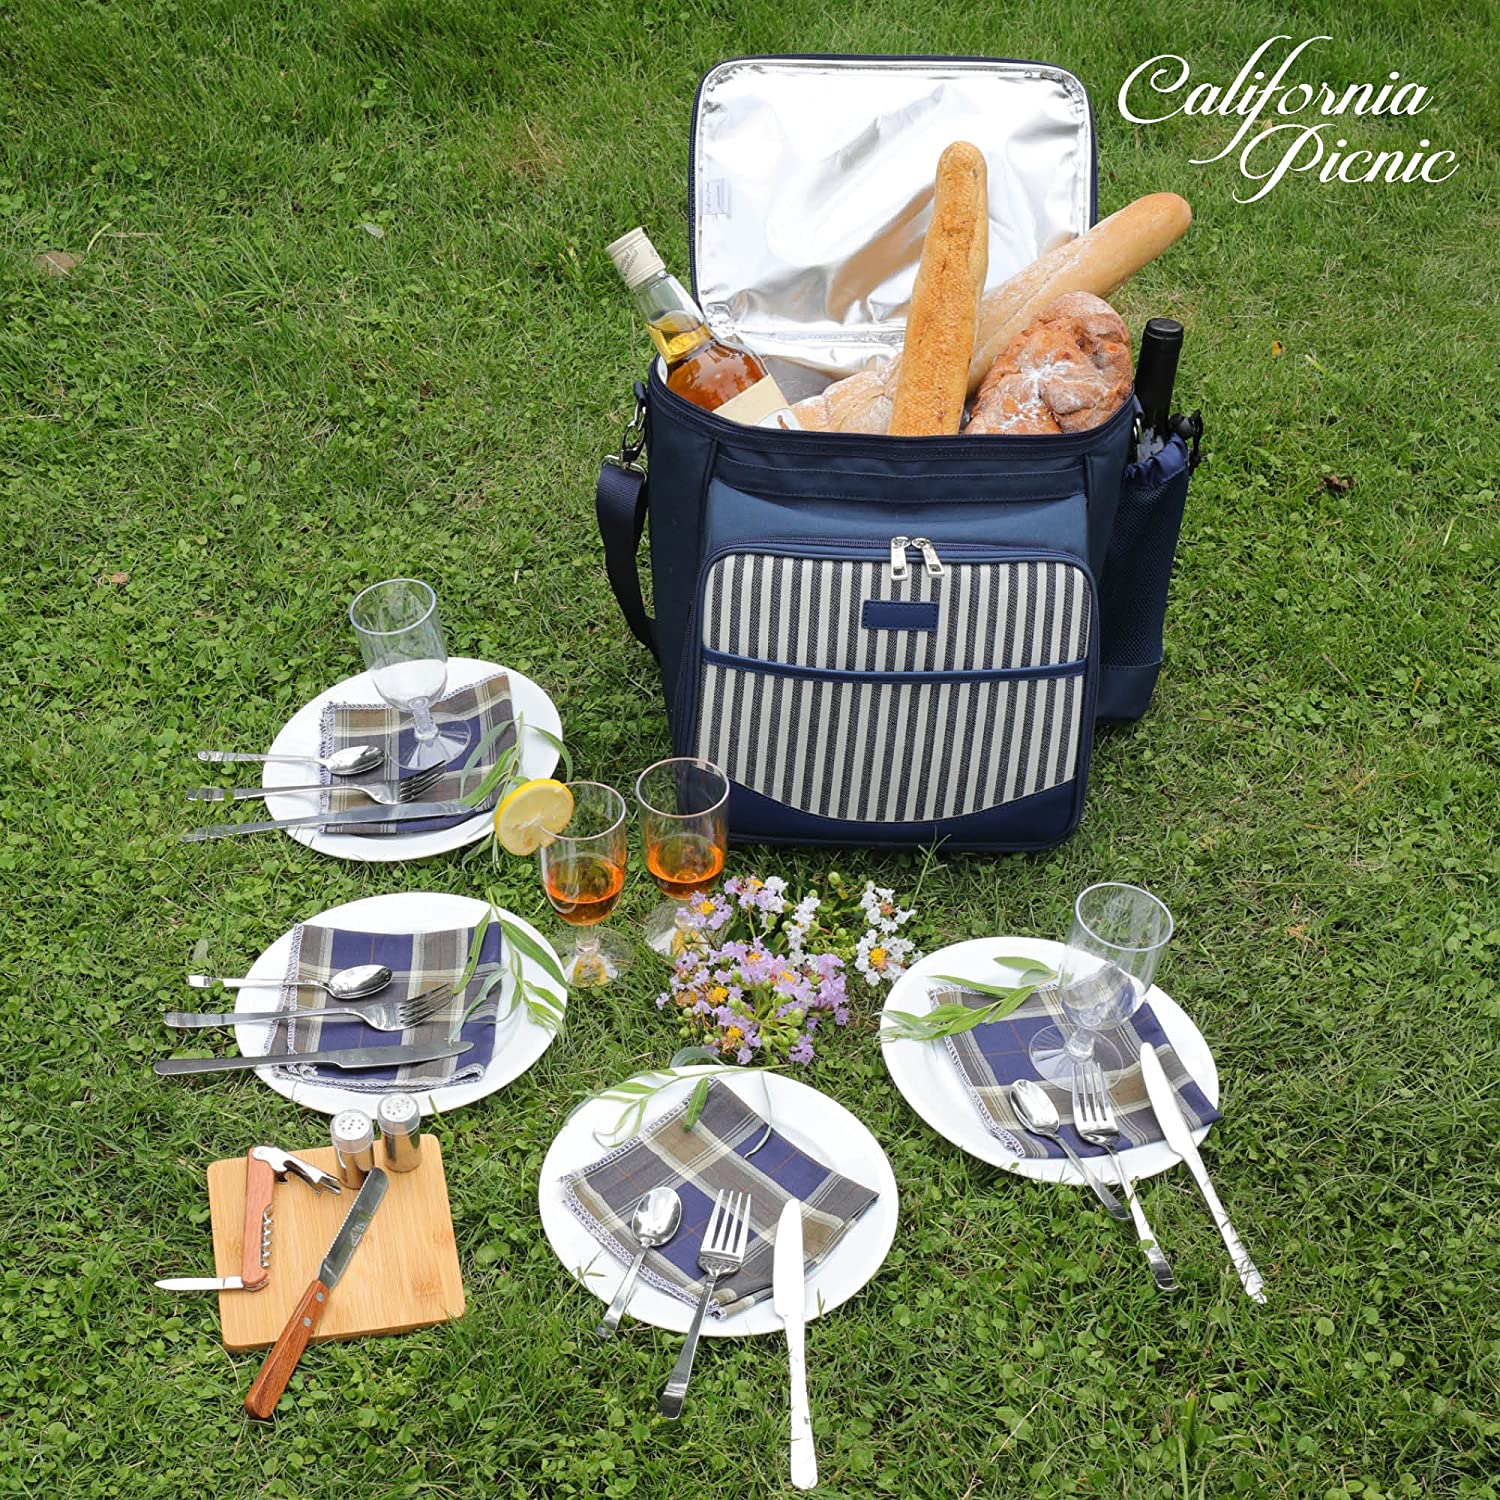 Picnic Shoulder Bag Set Cooler Bag for Camping Picnic Basket Tote Insulated Tote Bag Cheese Board Stylish All-in-One Portable Picnic Bag for 4 with Complete Cutlery Set Salt//Pepper Shakers